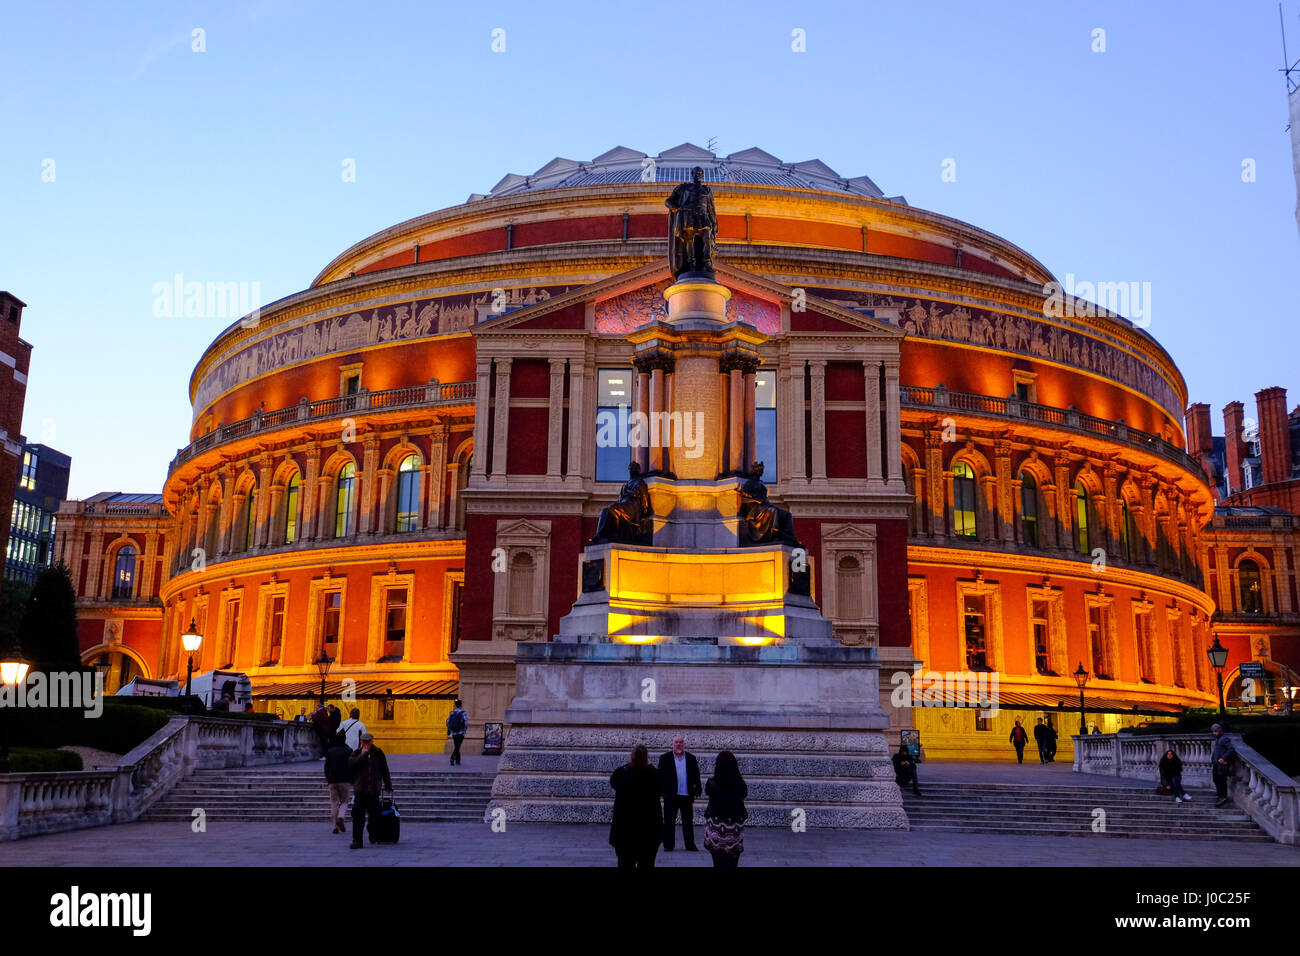 Royal Albert Hall, Kensington, London, England, UK - Stock Image